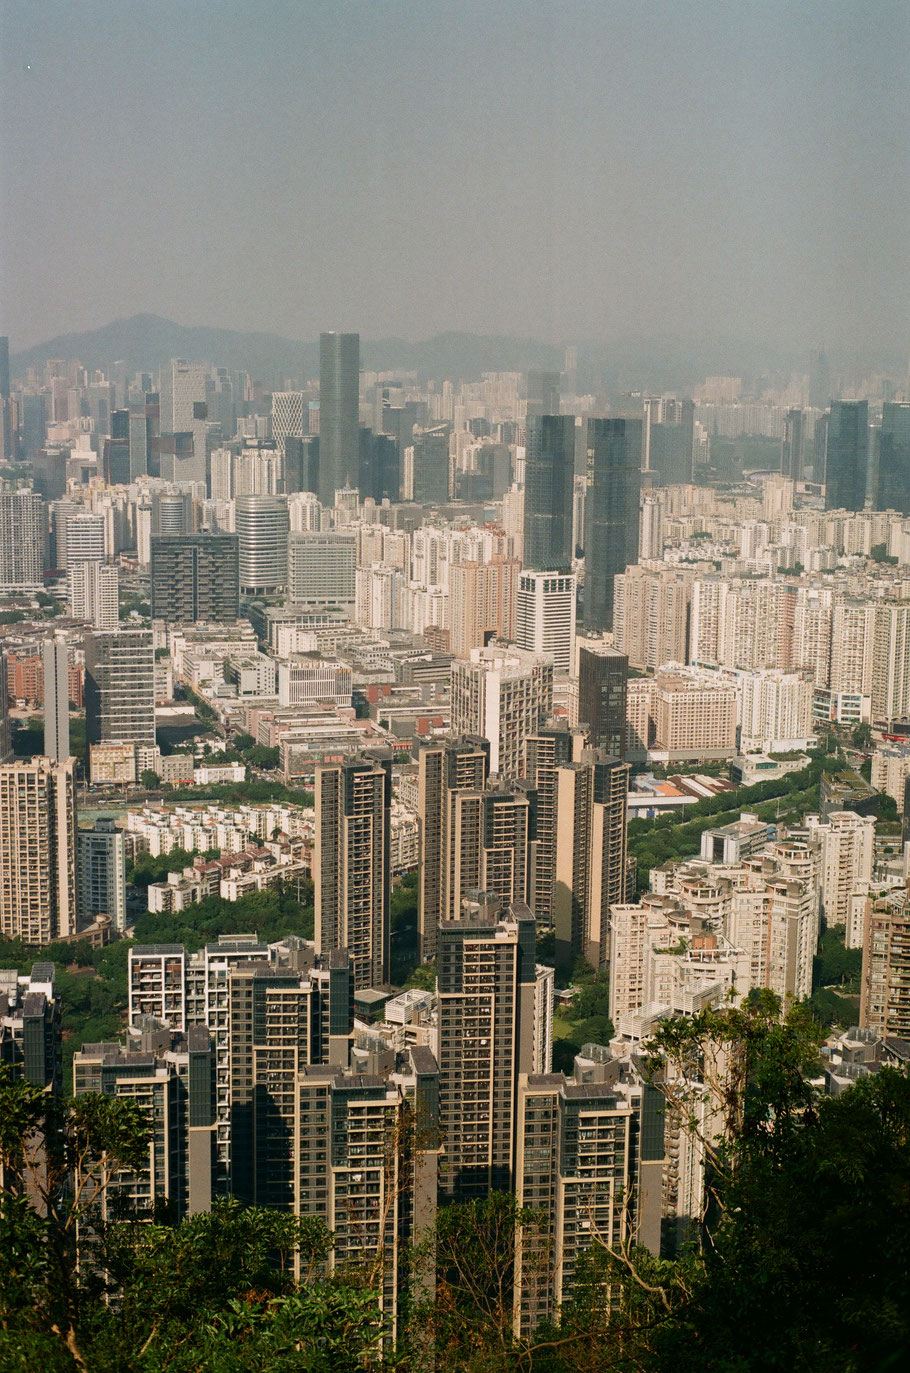 Shenzhen from above. We climbed a steep hill in 30 degree heat and 80% humidity for whatever reason. We could see Hong Kong from the very top